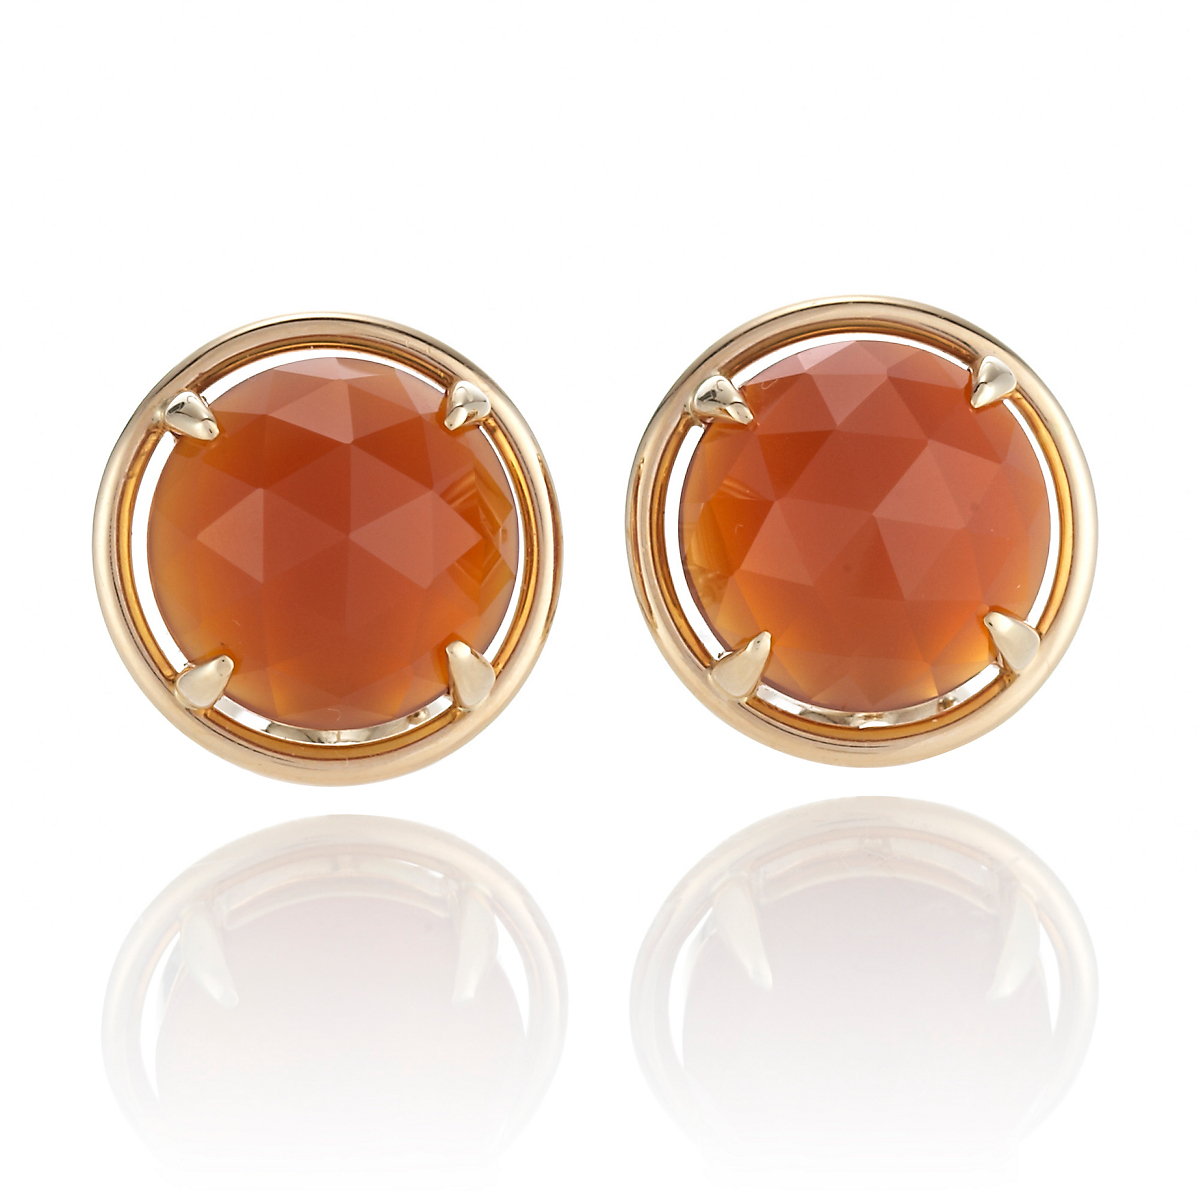 Gump's Faceted Carnelian Cabochon Earrings